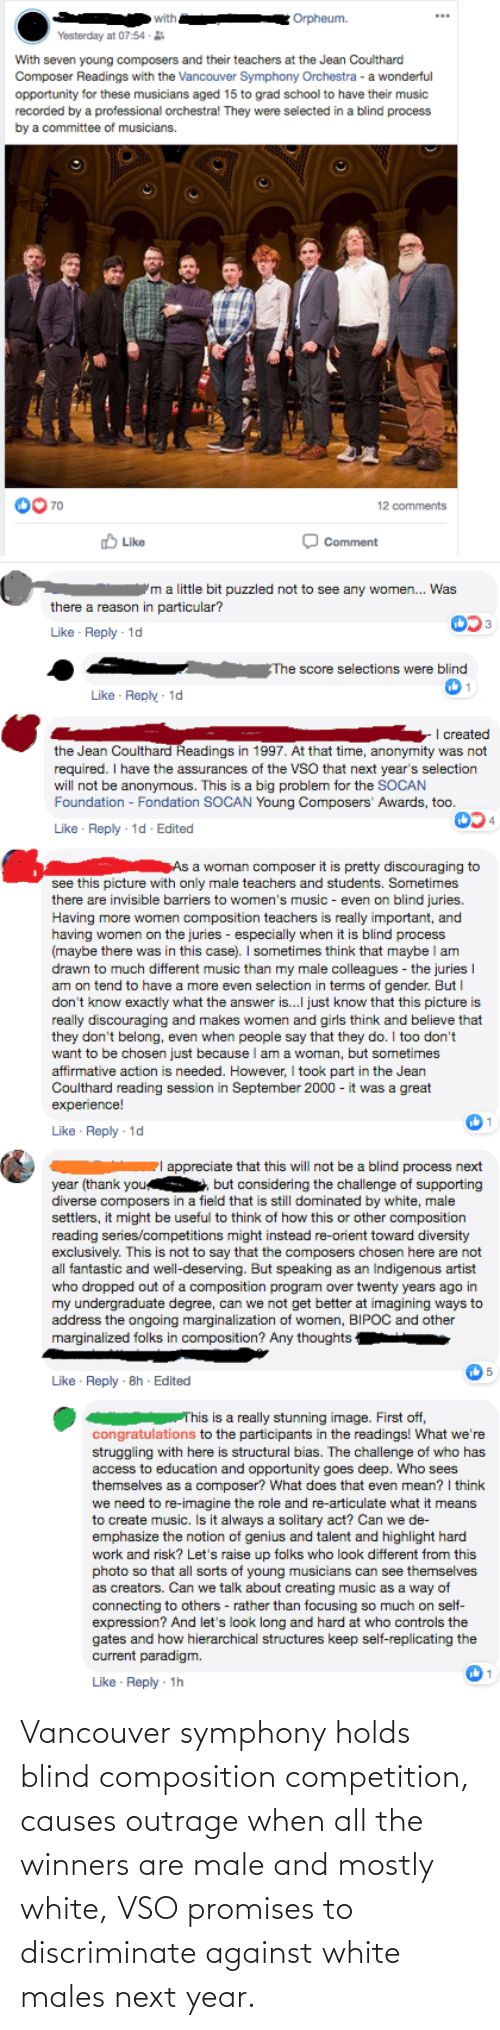 Outrage: Vancouver symphony holds blind composition competition, causes outrage when all the winners are male and mostly white, VSO promises to discriminate against white males next year.